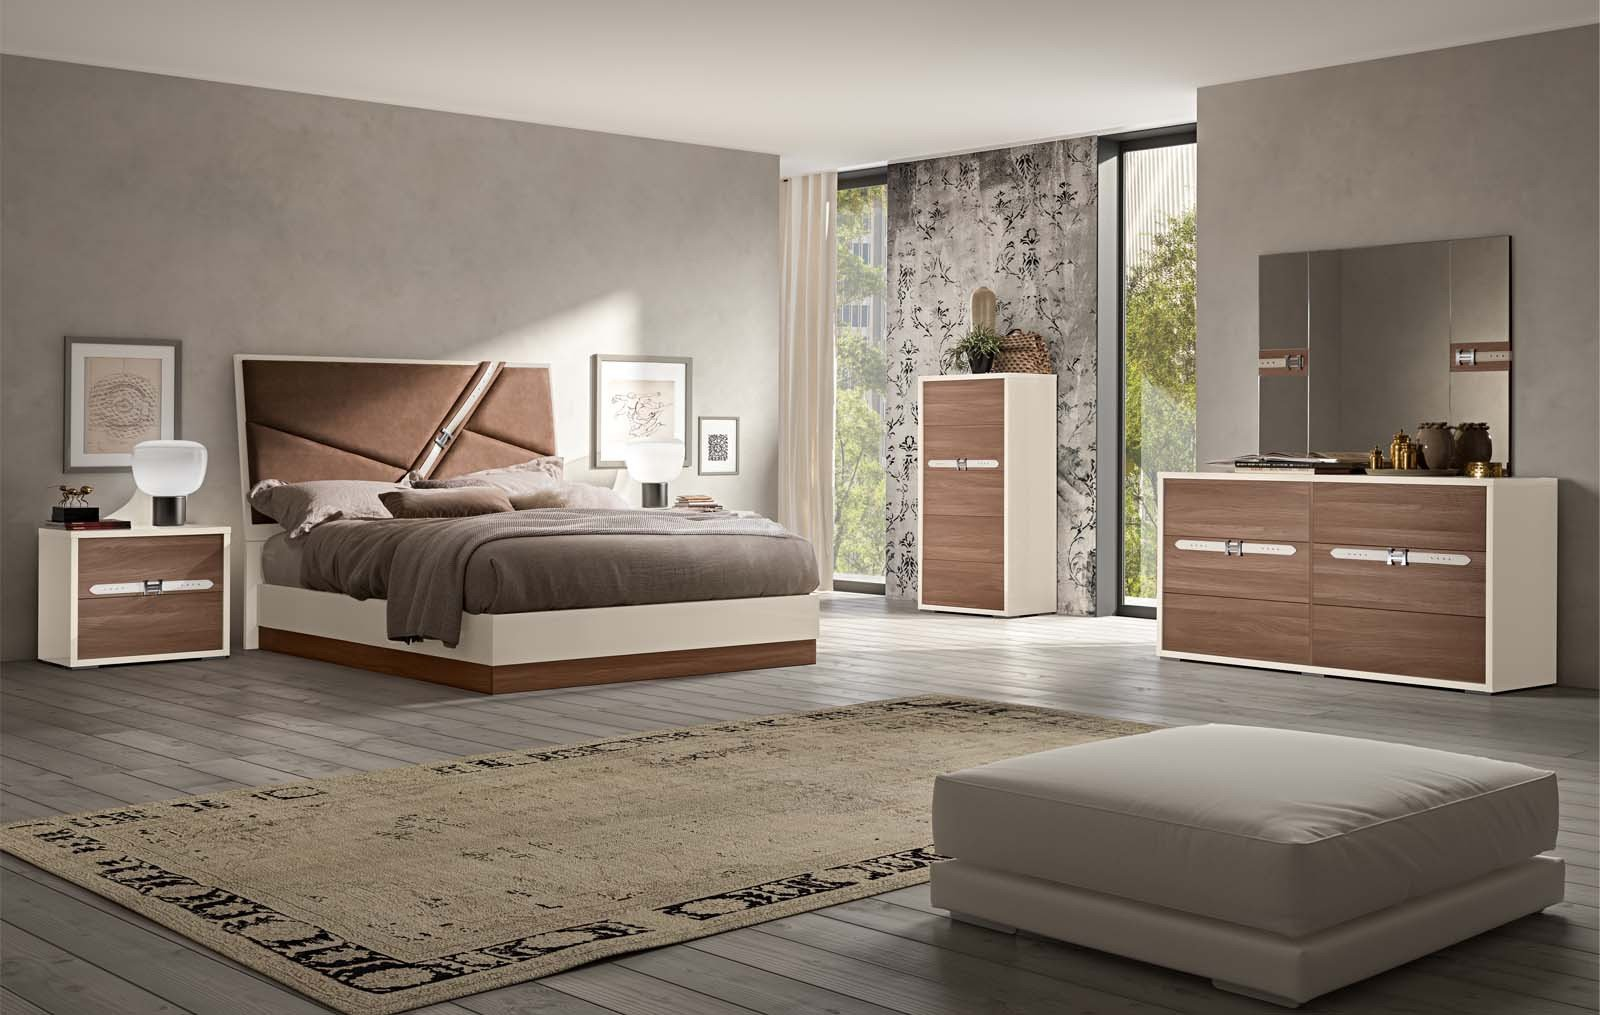 Monte Carlo Bedroom Set Beautiful Evolution Bedroom Modern Bedrooms Bedroom Furniture